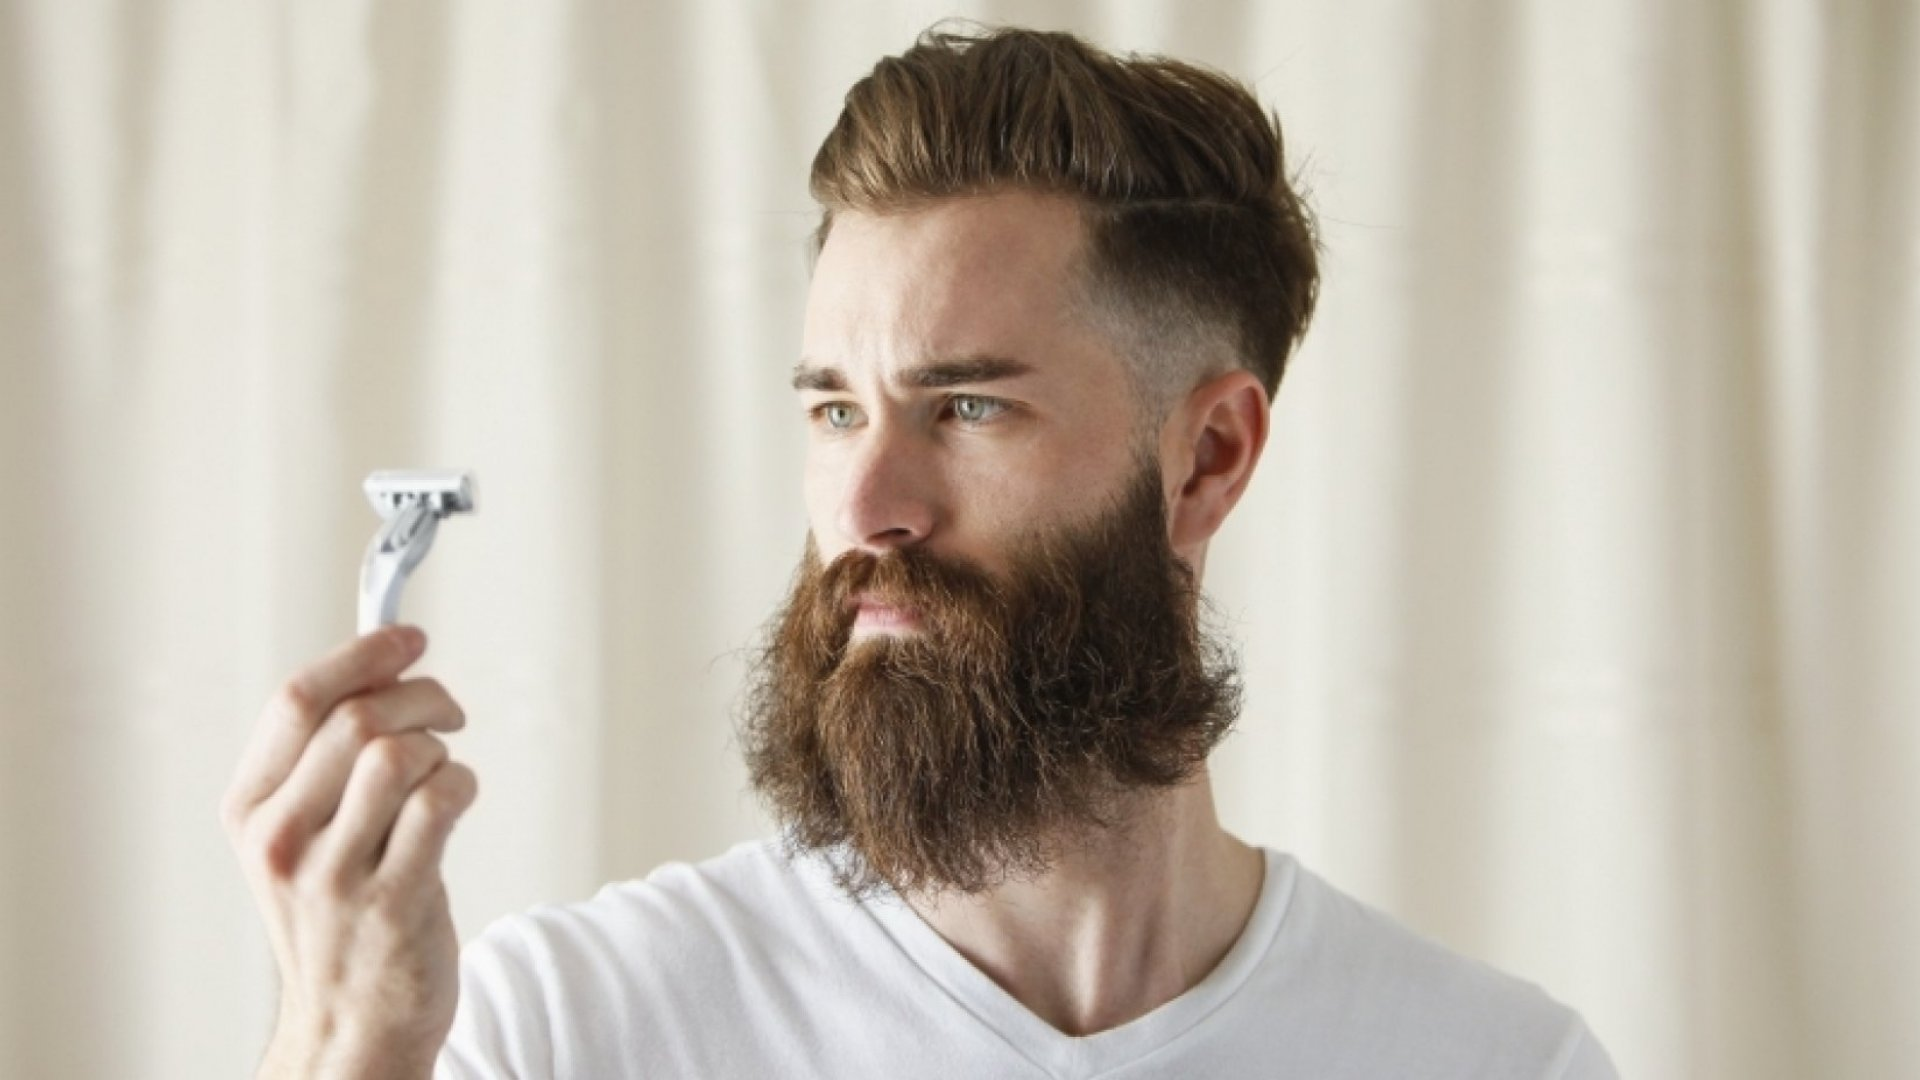 The Guy Who Did That Viral Shaving Video Now Has a Company Worth $615 Million